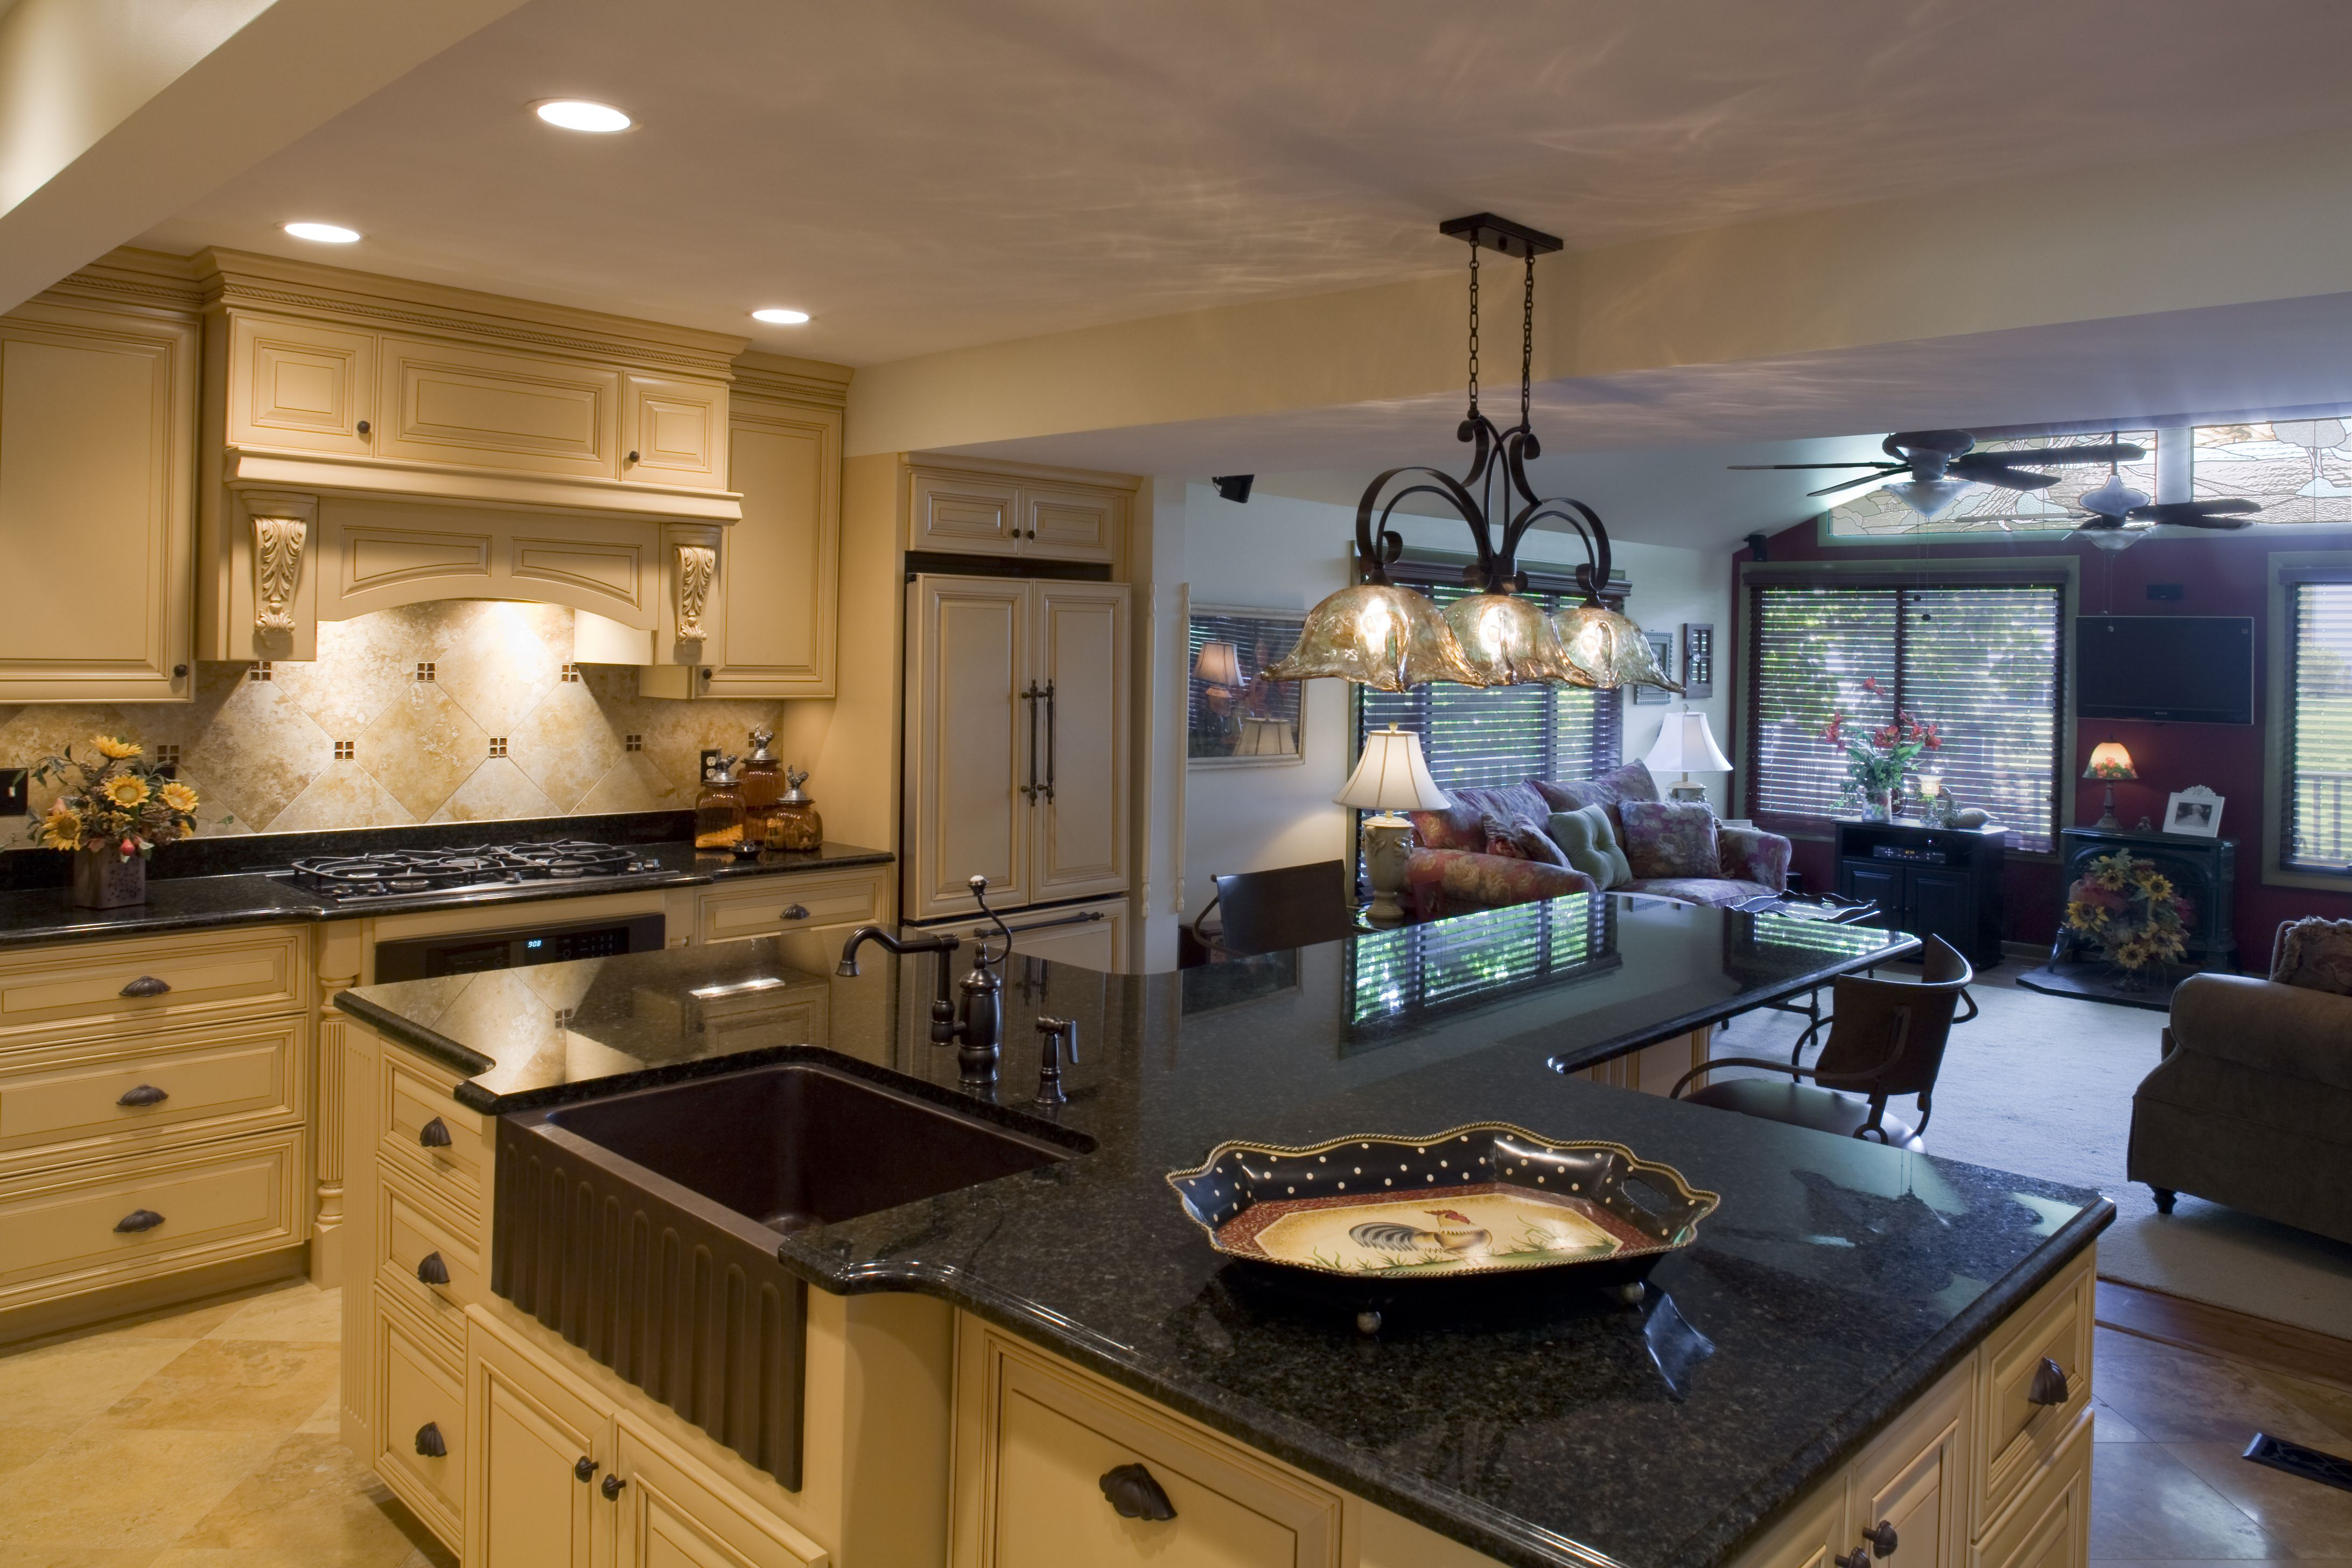 t shaped kitchen island granite counter top copper farm sink kitchen copper farm sink on t kitchen ideas id=15811